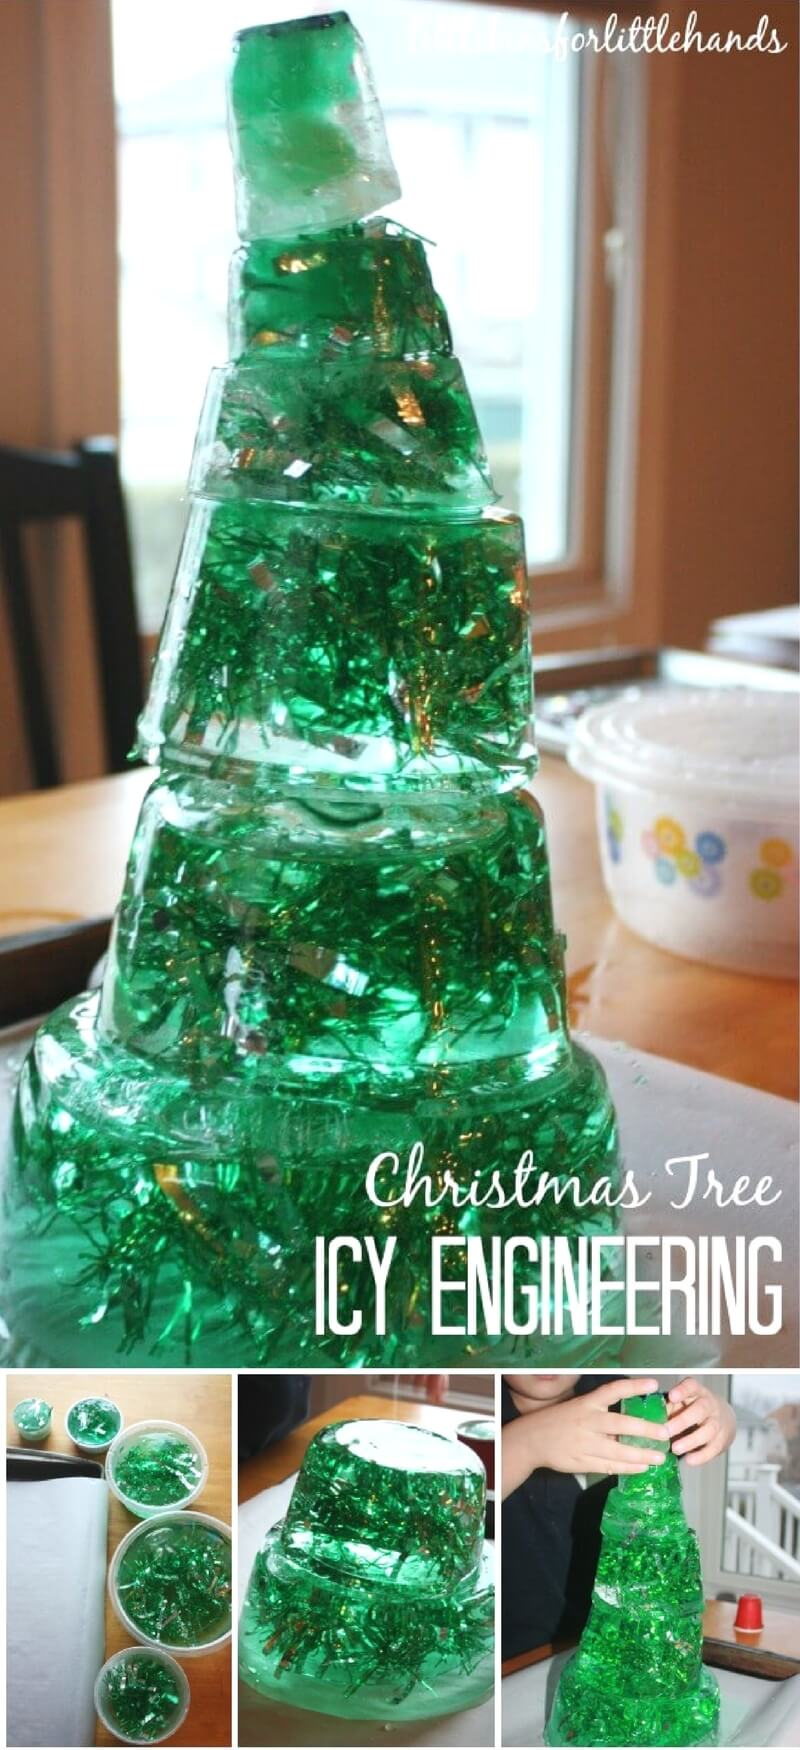 How many ways can you engineer a Christmas tree! We have thought of a few fun ways to play around with Christmas tree STEM this holiday season that don't use just real trees! This icy Christmas tree STEM project was super fun and also a fun family activity. We had a great time piecing together this icy Christmas tree before it melted. Check out the unique ways that science and STEM can be a part of your holiday activities.